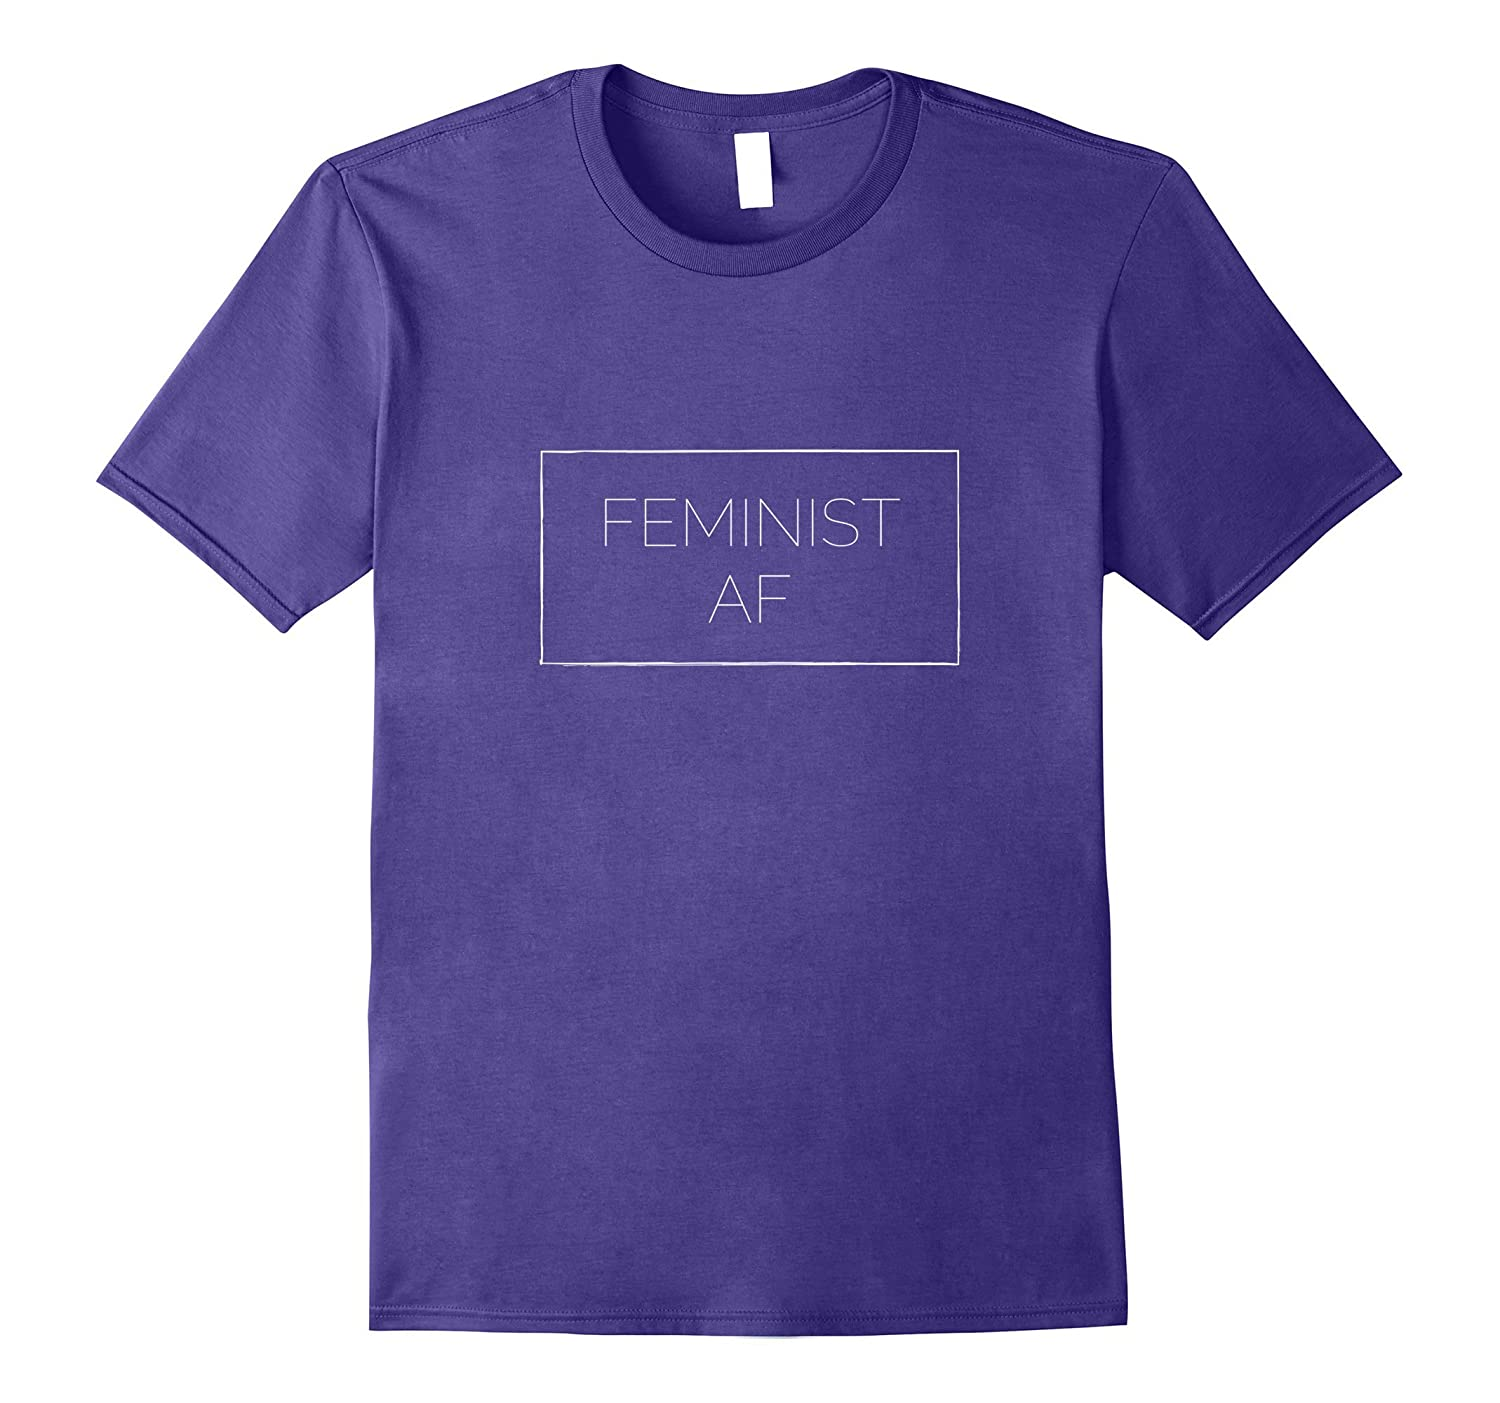 Feminist AF T-shirt Feminist Women's Rights T-shirt-CL